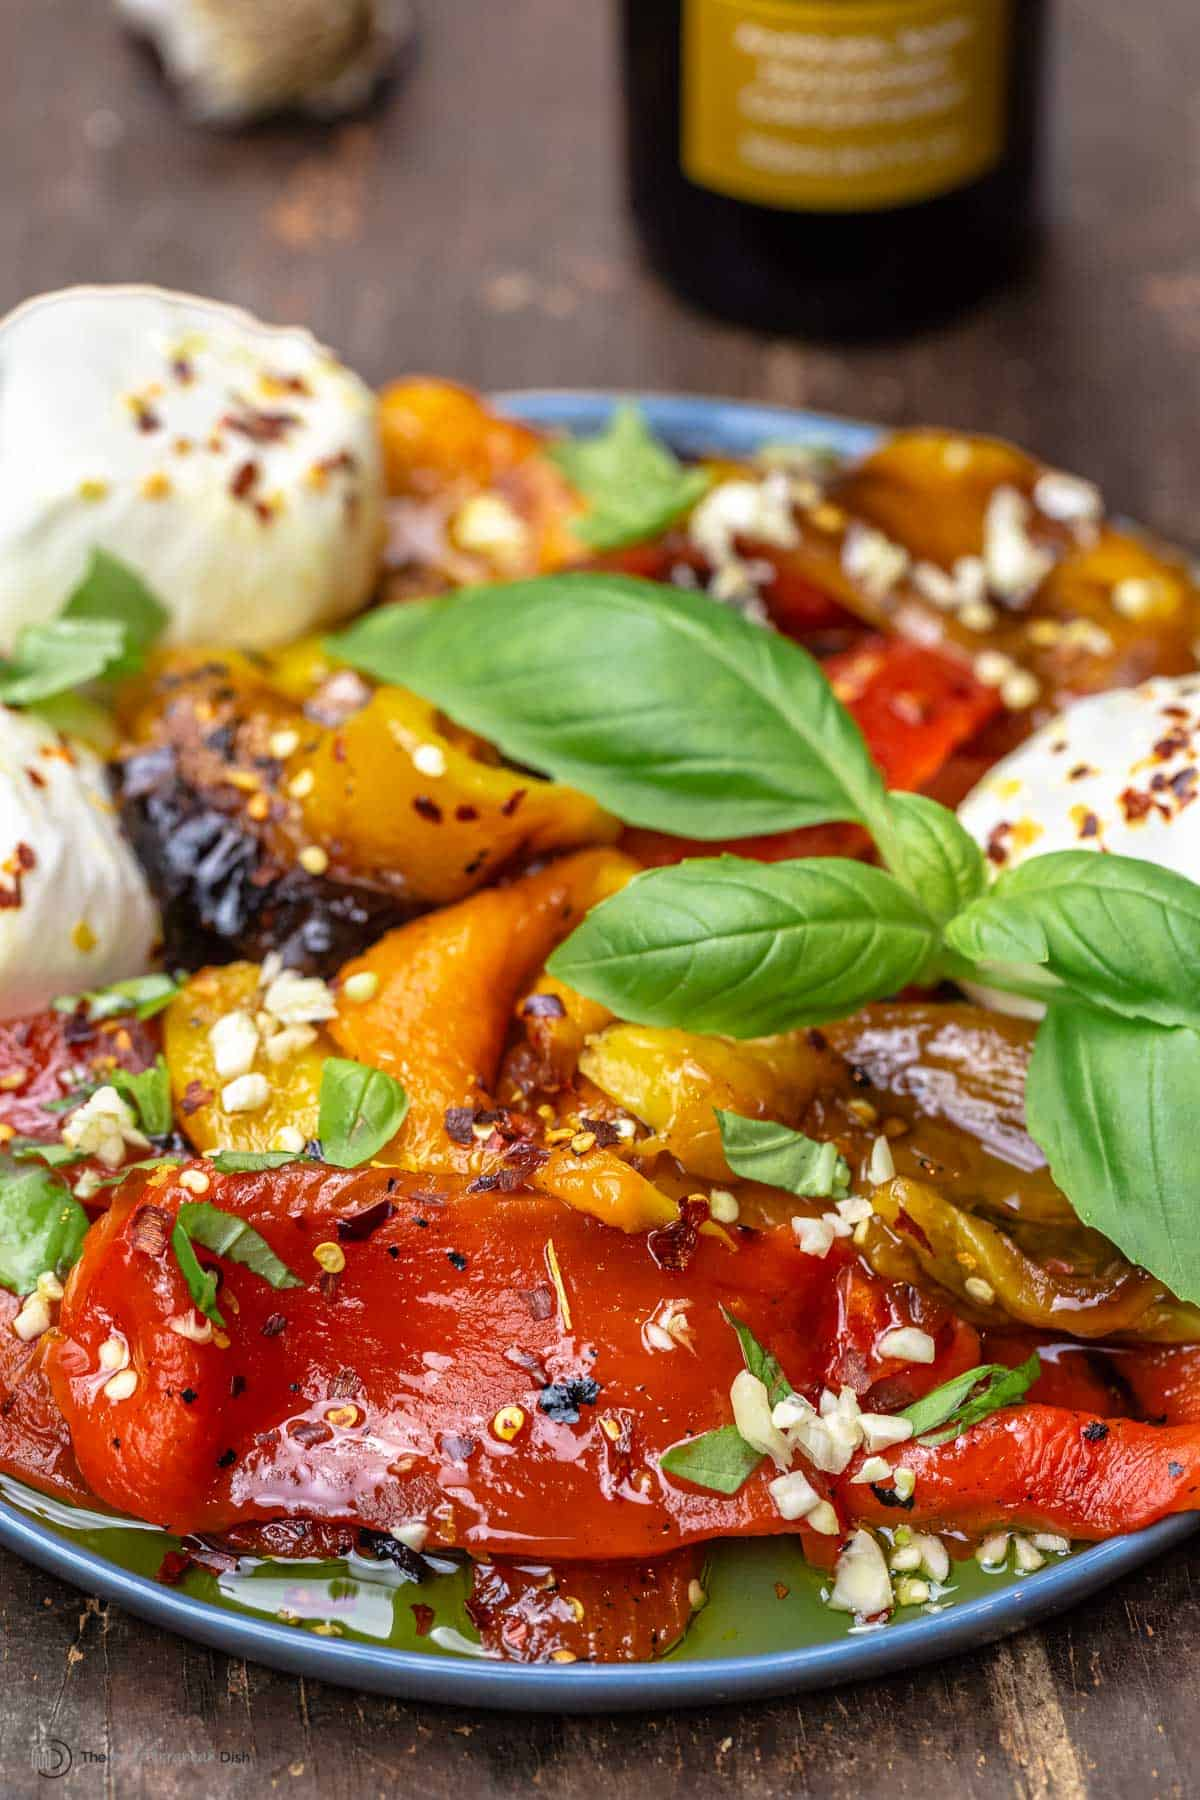 Roasted red peppers on a tray with burrata